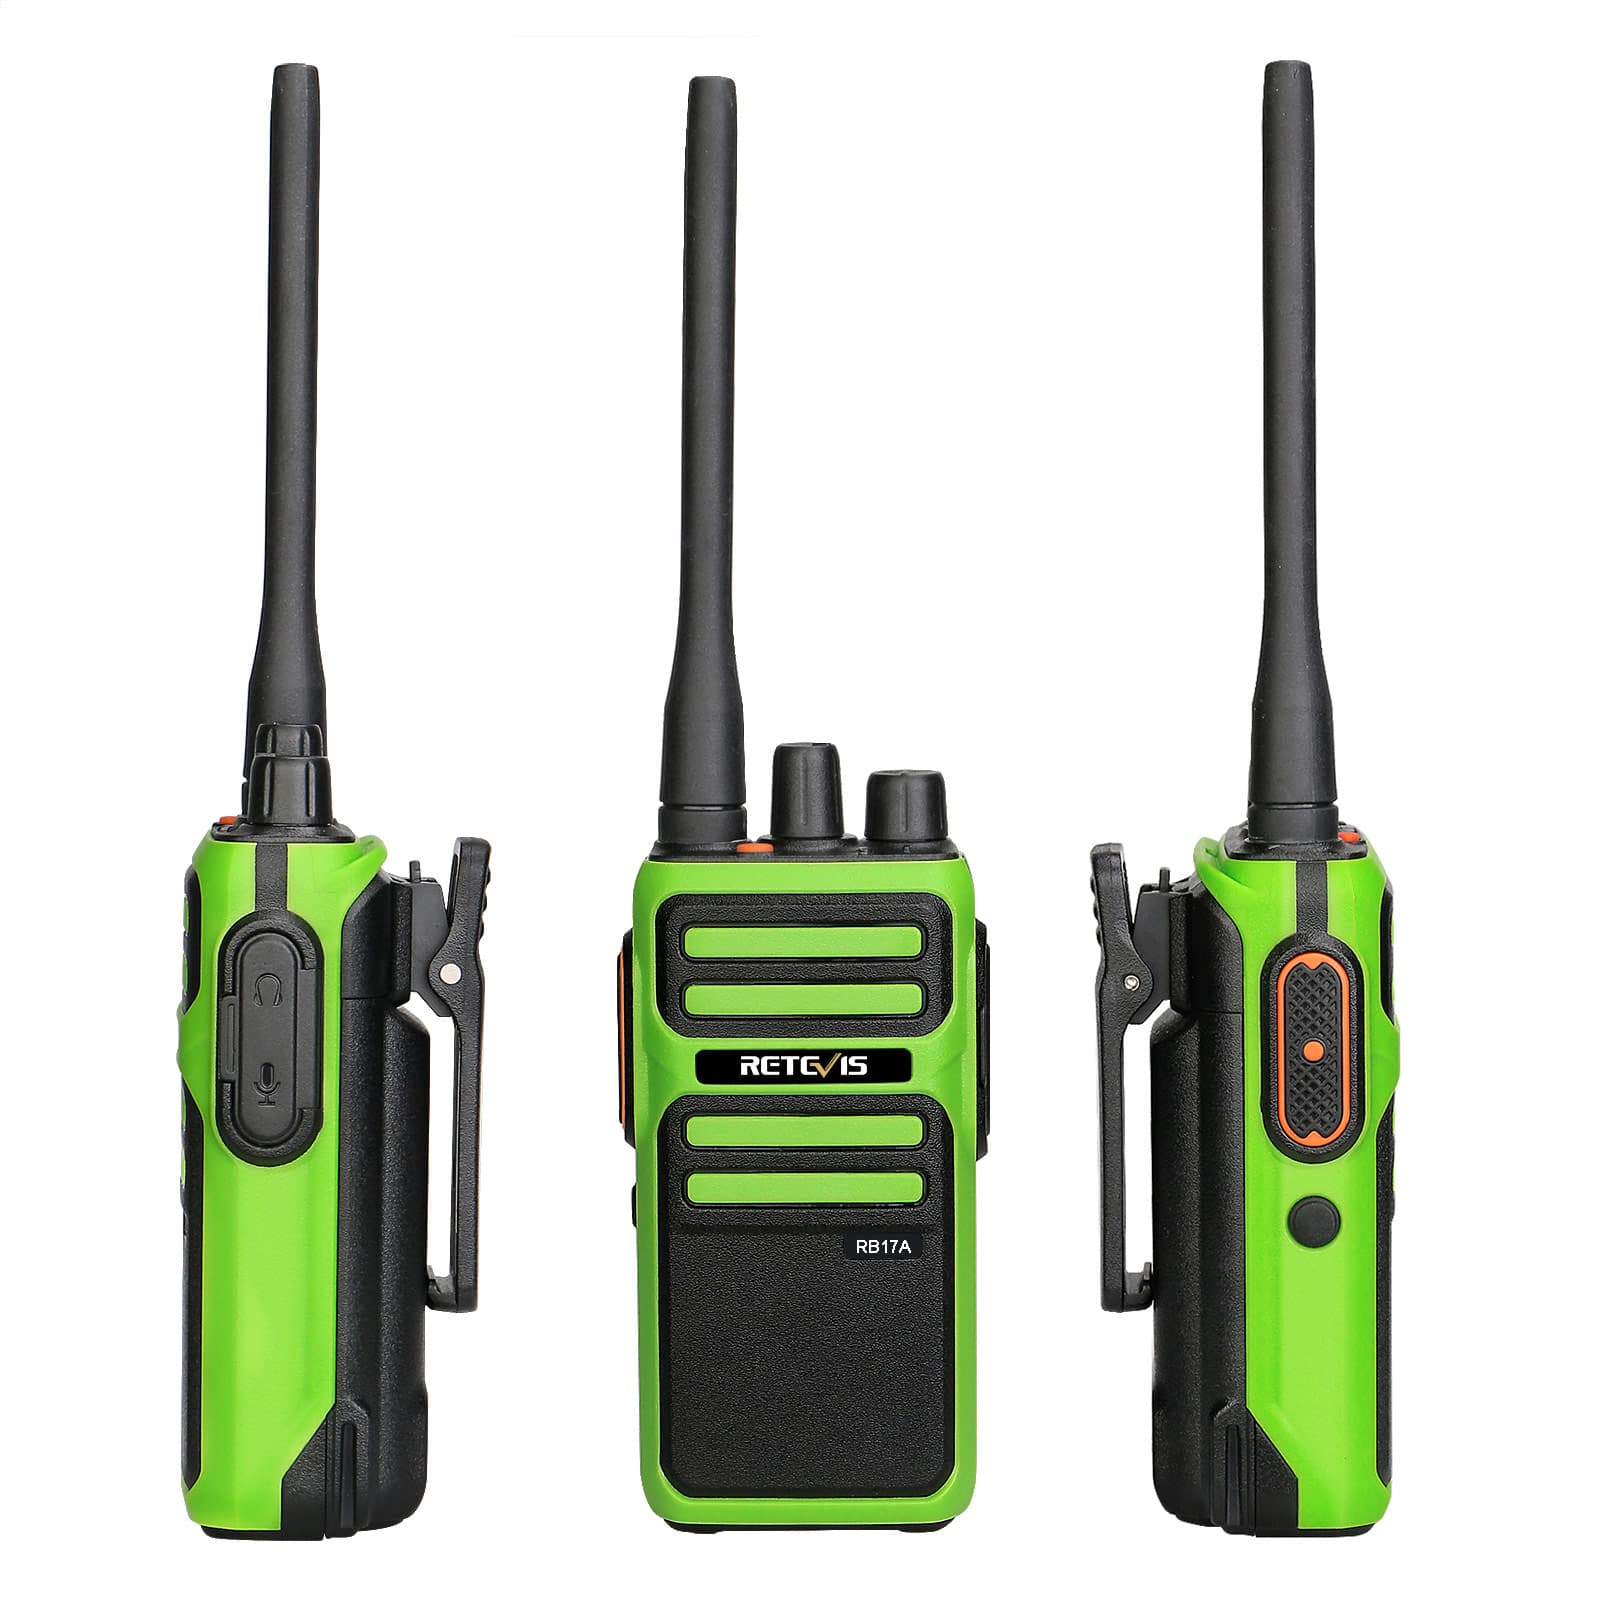 Retevis RB17A——New member of GMRS Radios